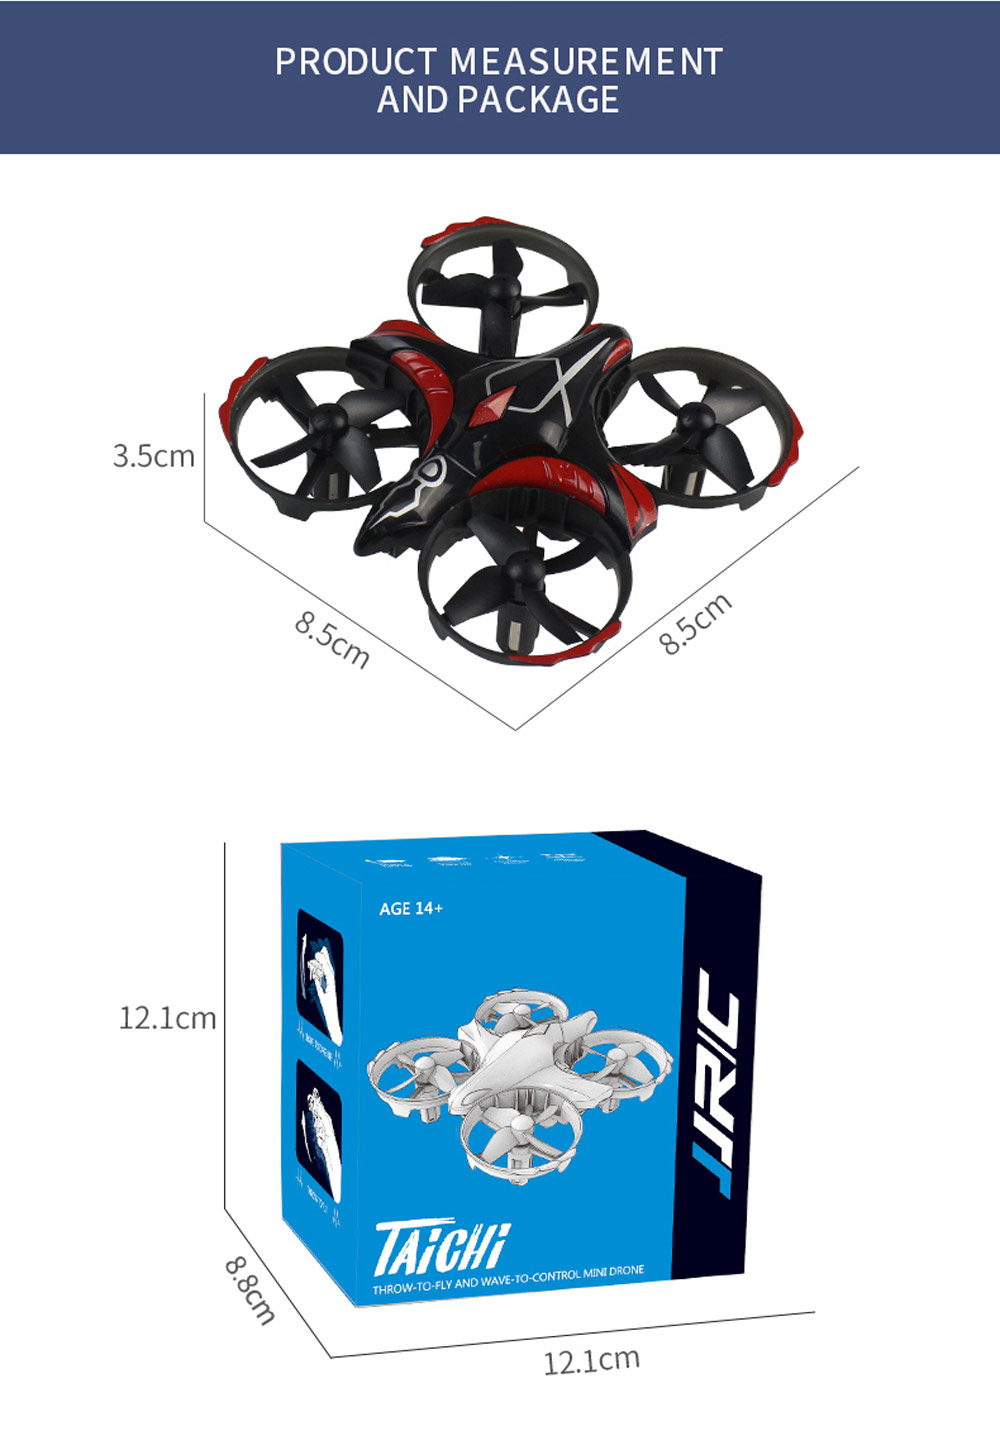 JJRC H56 TaiChi RC Drone Interactive Altitude Hold Gesture Control Throw Shake Fly 3D Flip One Key Takeoff Landing - Black